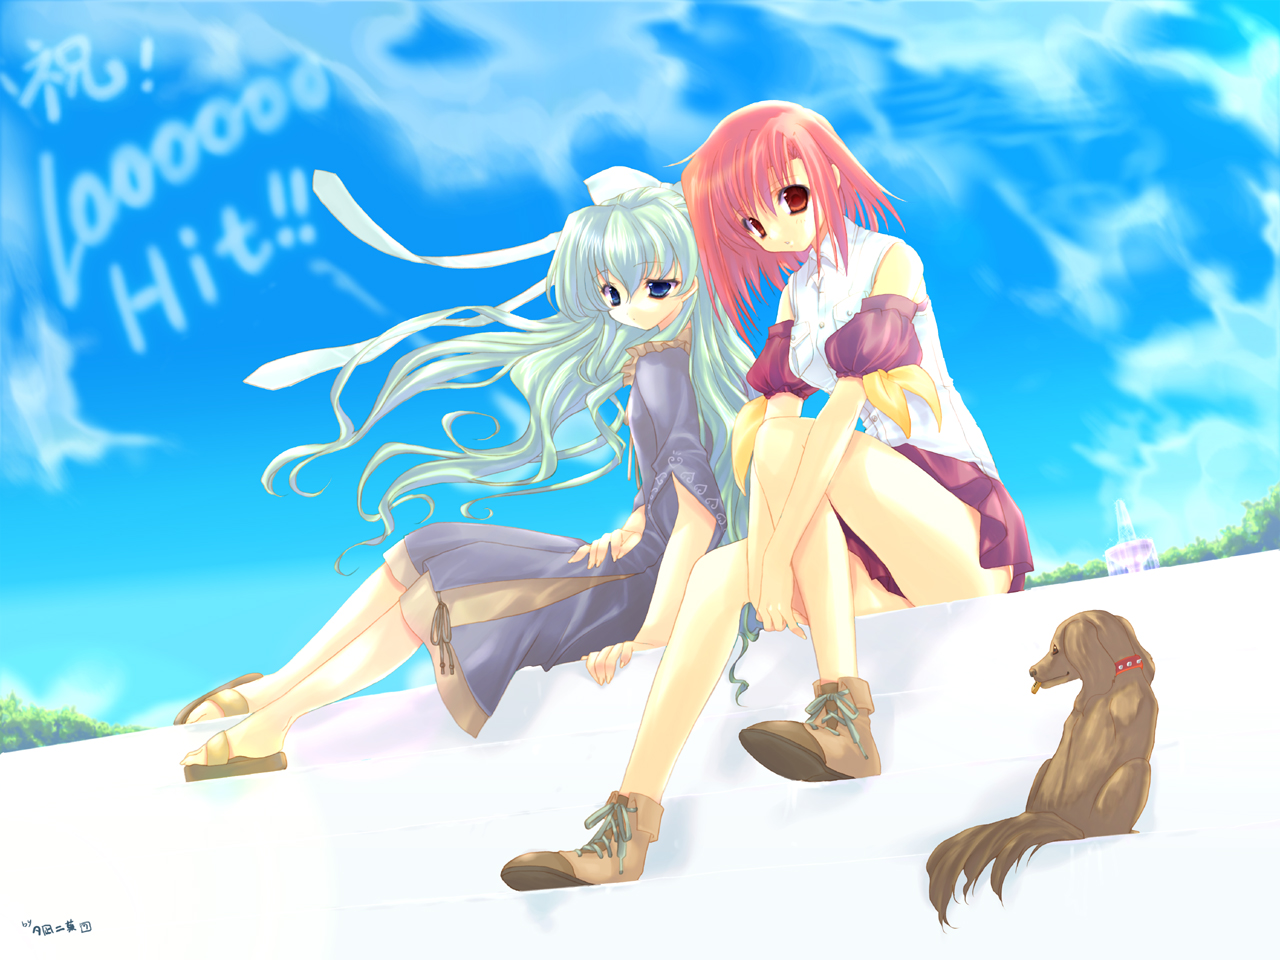 animal blue blue_eyes boots clouds collar dog dress green_hair pink_hair red_eyes red_hair ribbons skirt sky stairs upskirt water